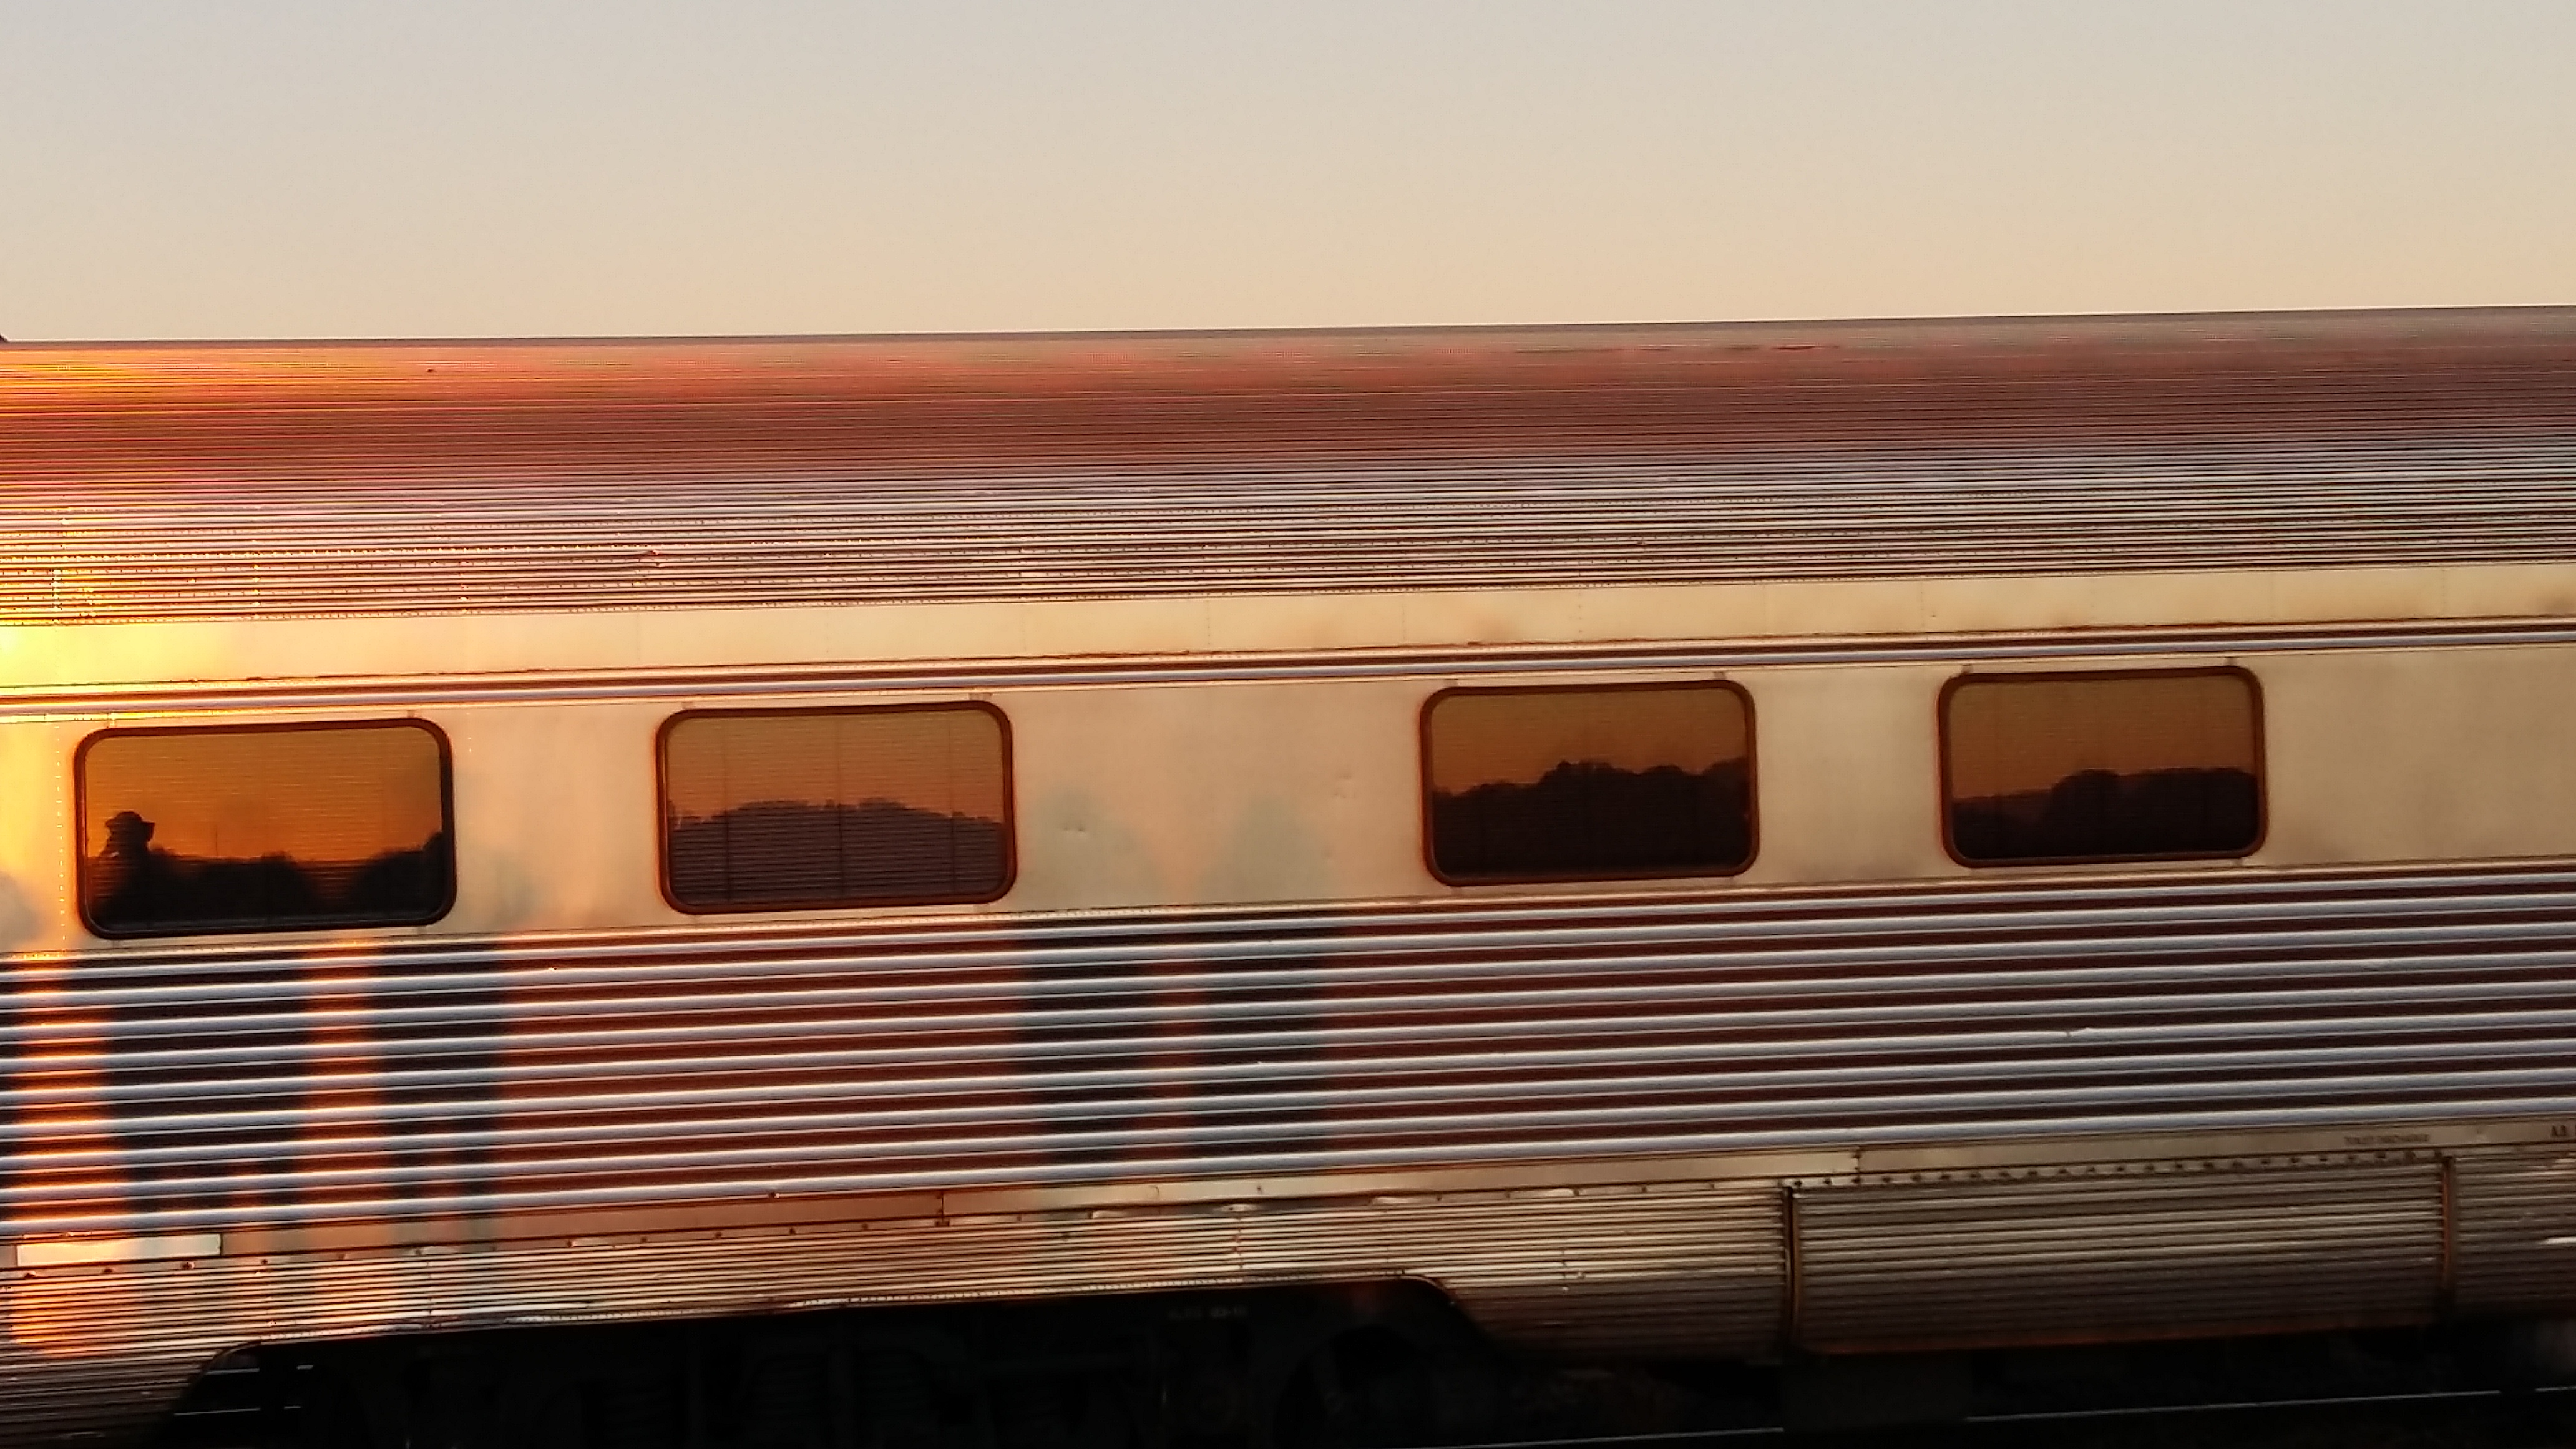 20180702_072817 Zon in The Ghan (3)